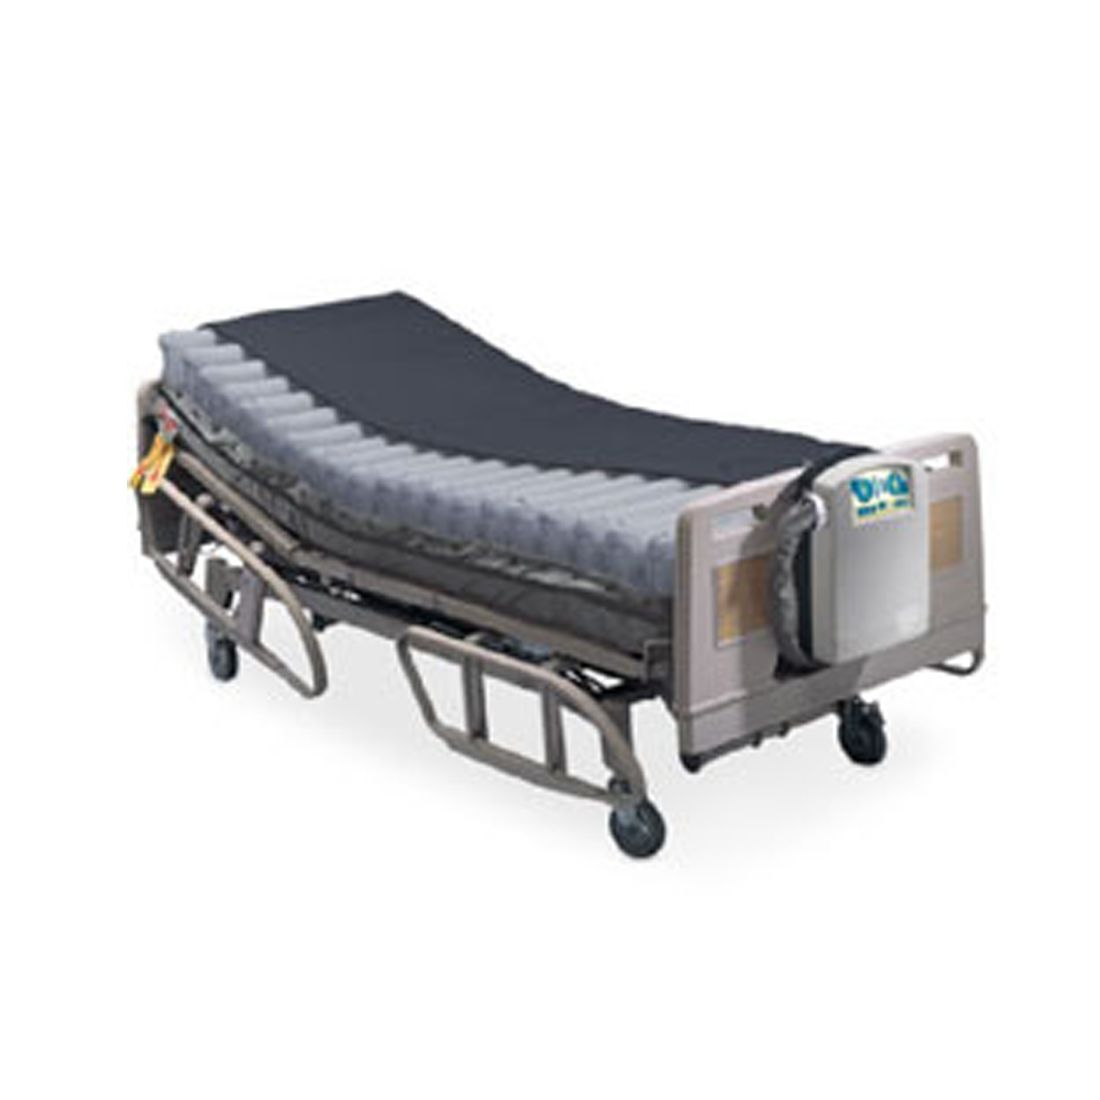 Platinum Evolution Bariatric Air Mattress Swl Up To 450Kg